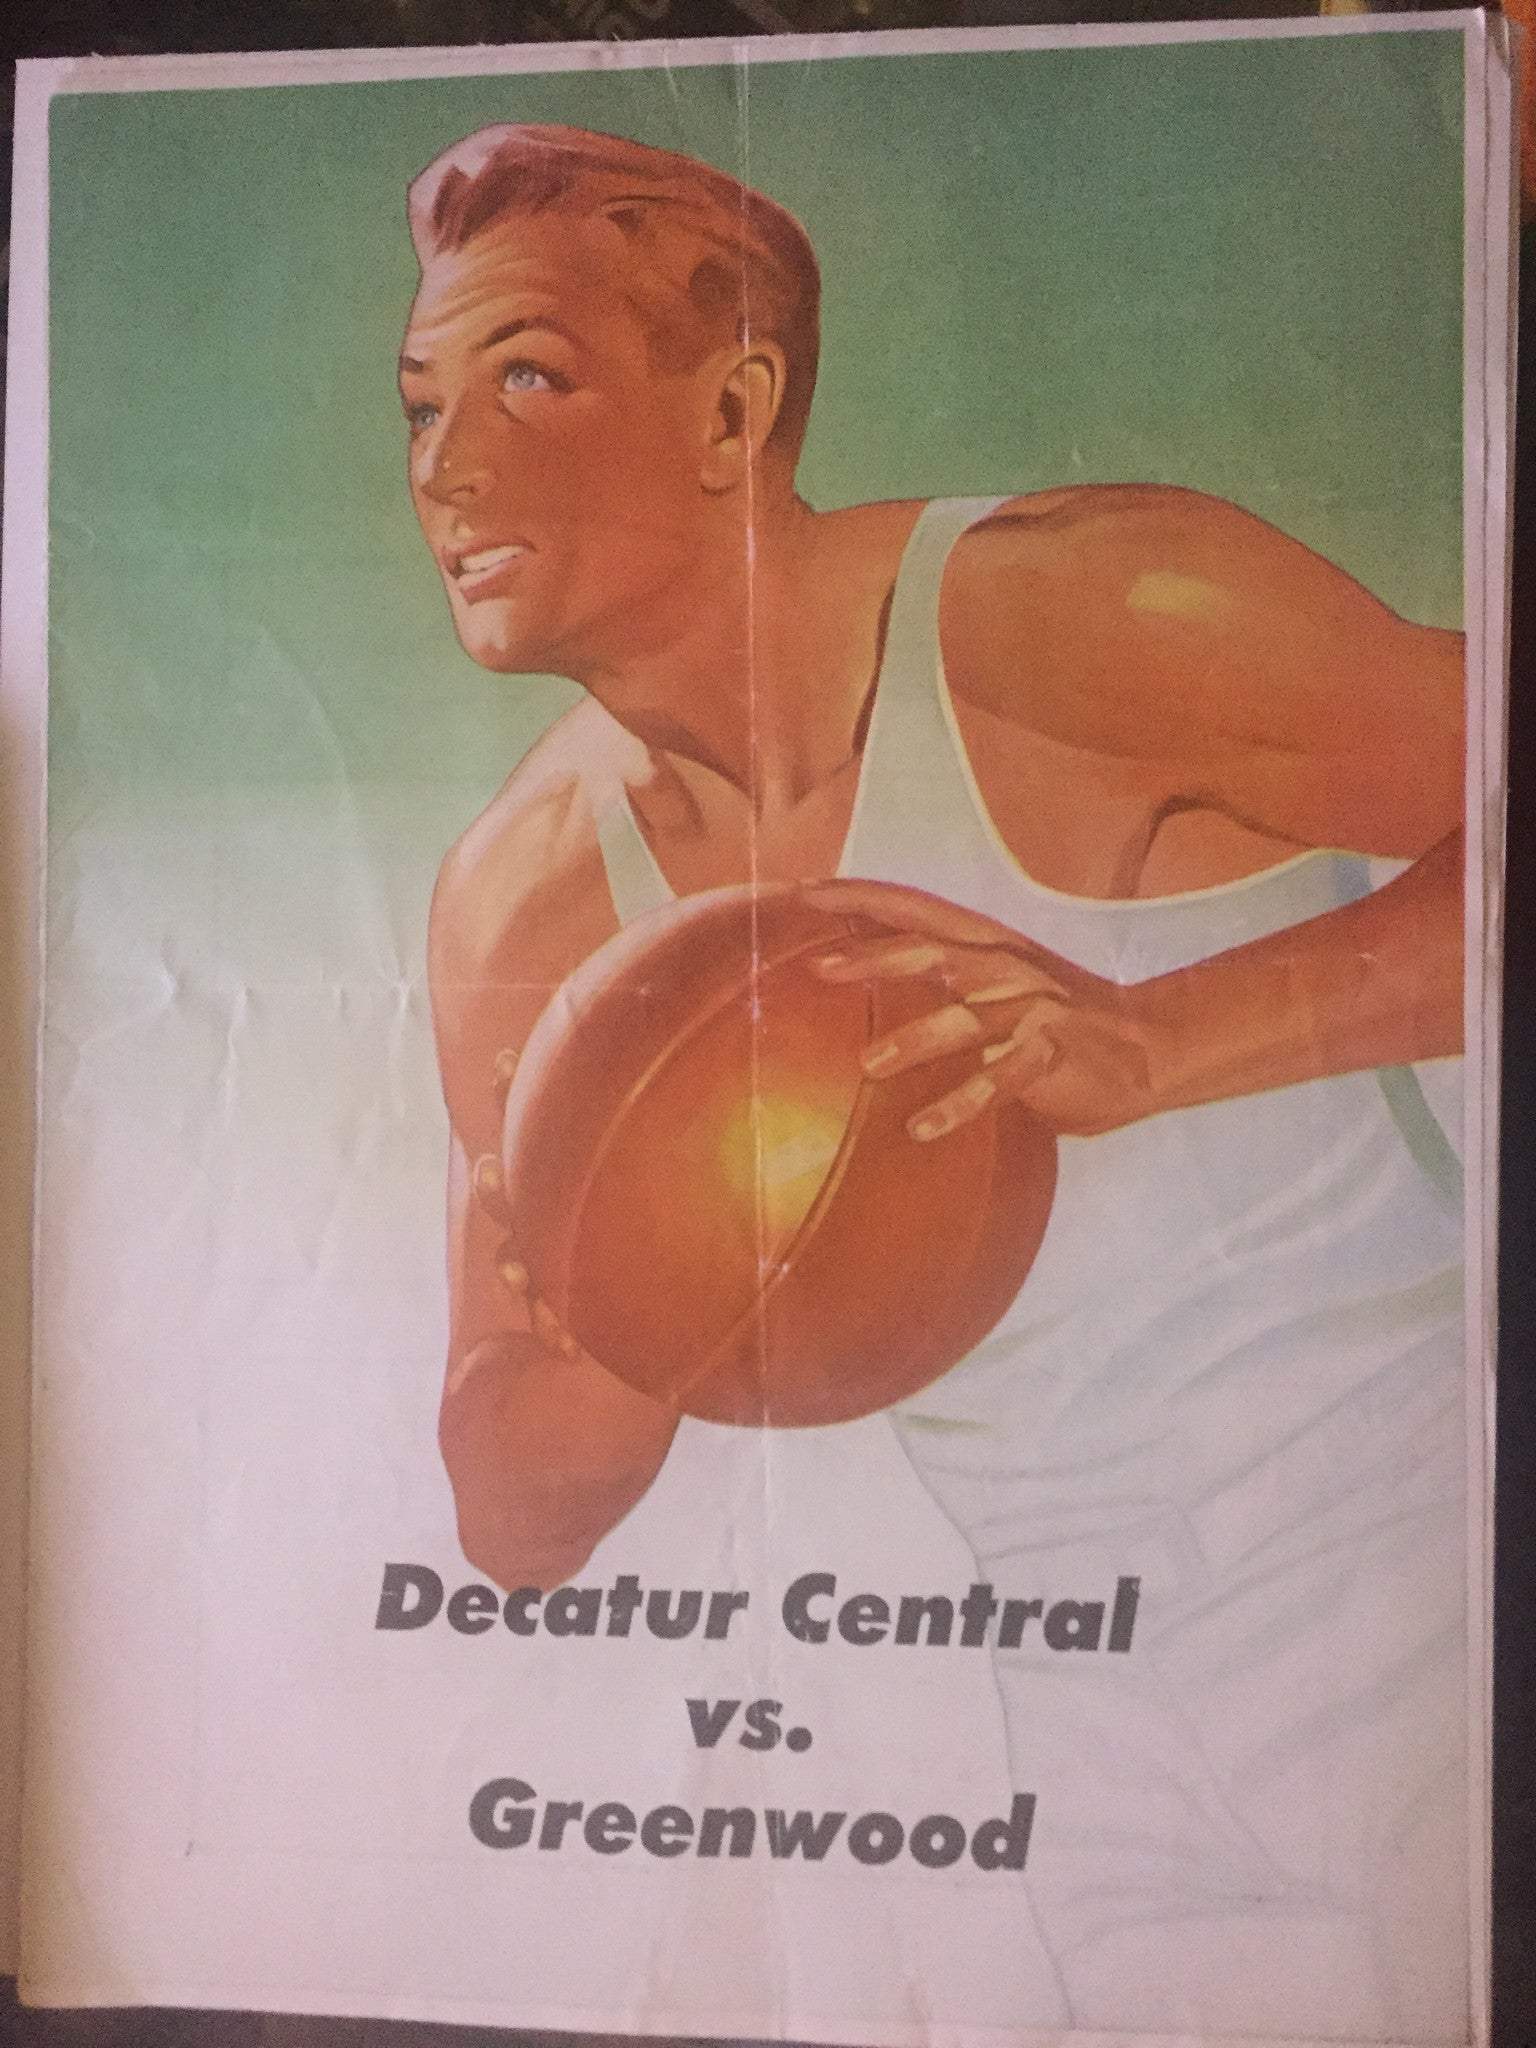 1950 Decatur Central vs Greenwood Indiana High School Basketball Program - Vintage Indy Sports